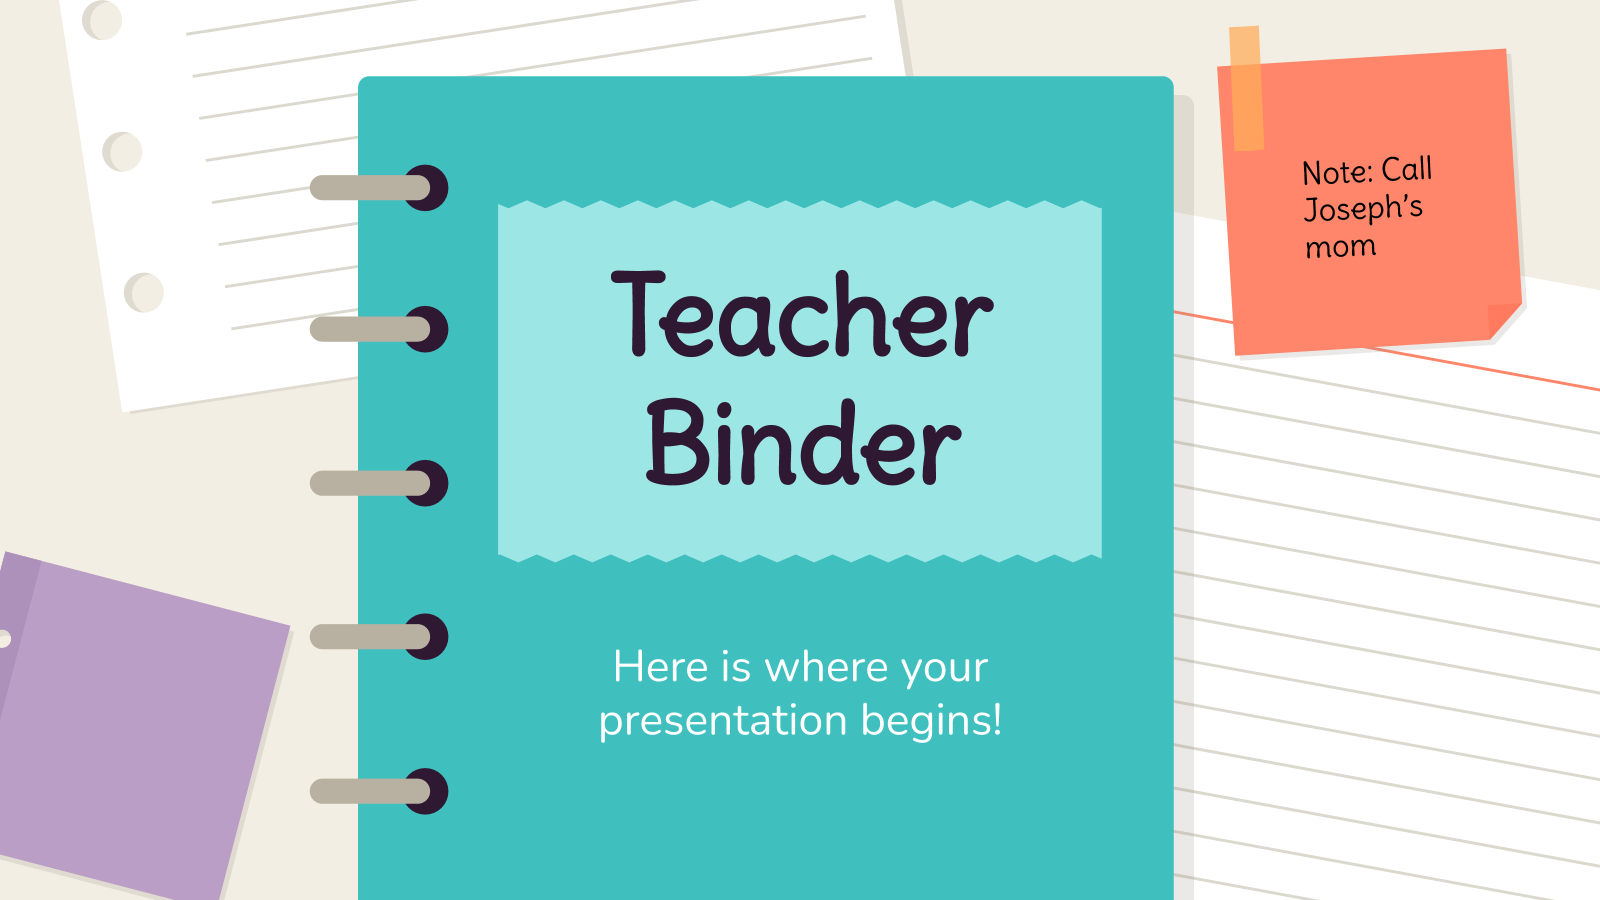 Teacher Binder presentation template